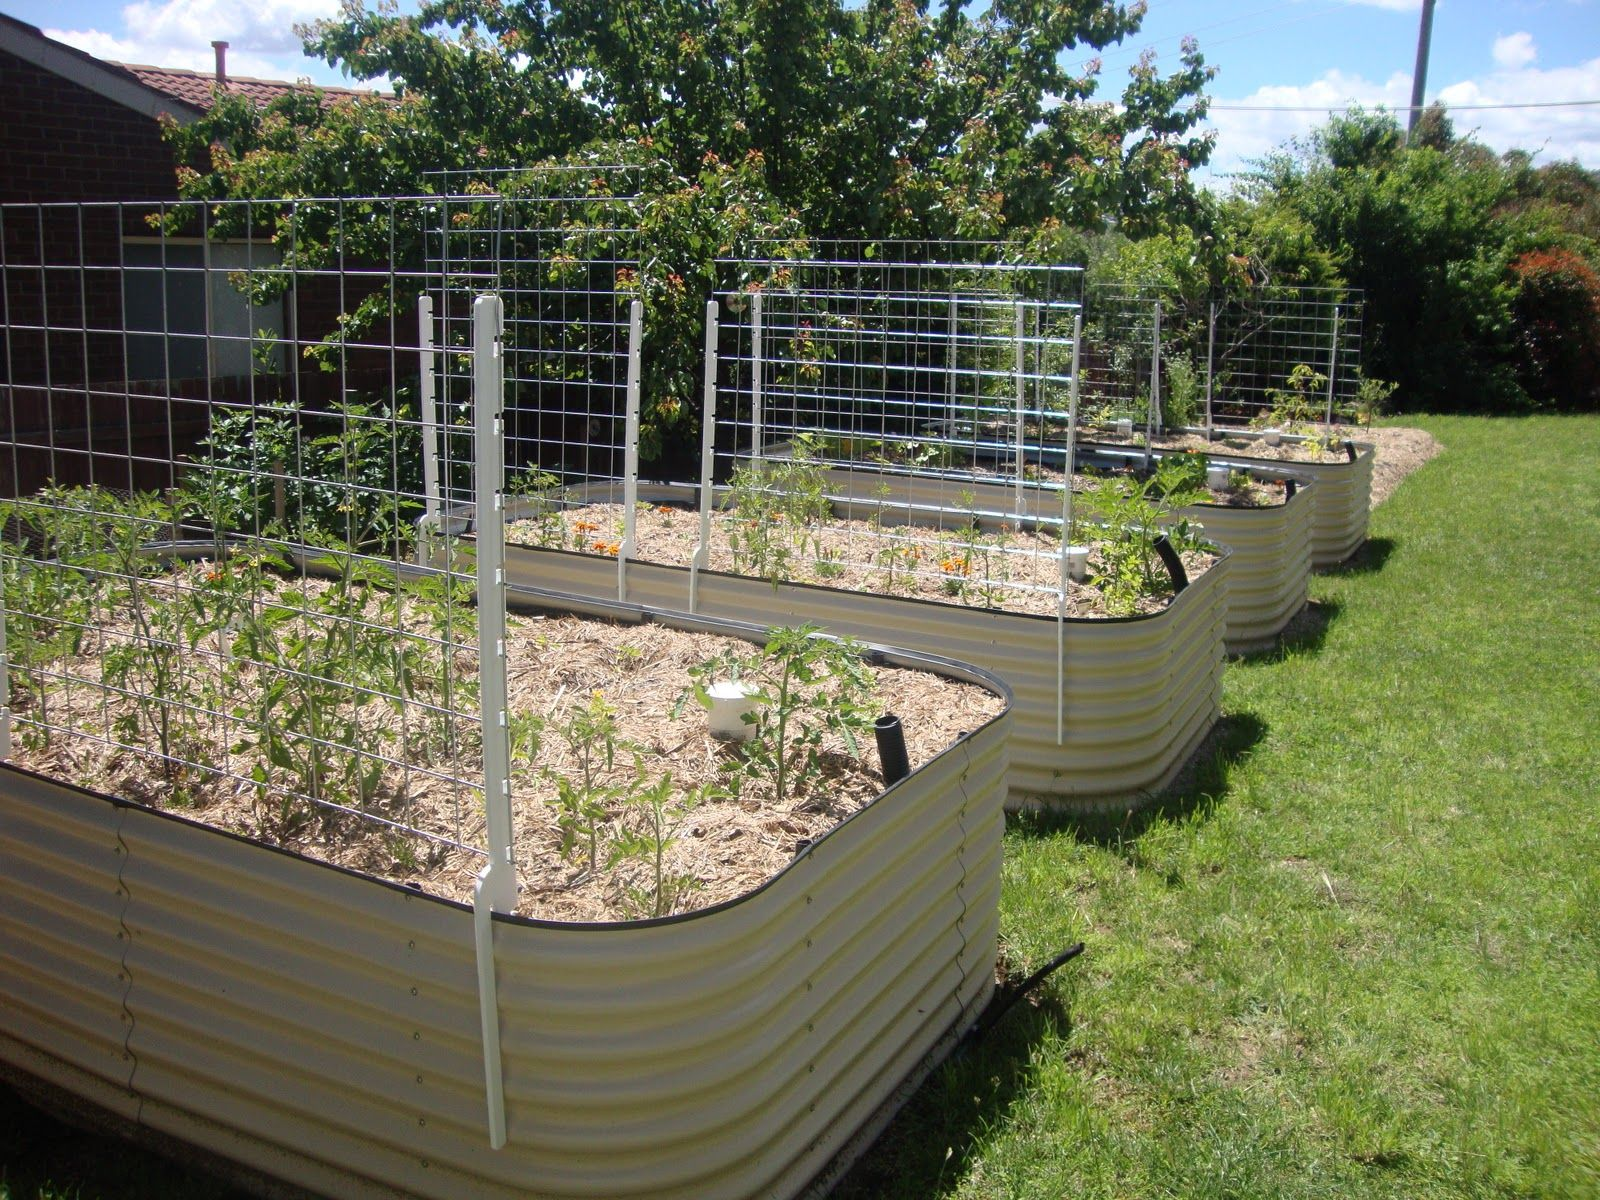 21 best wicking beds images on pinterest